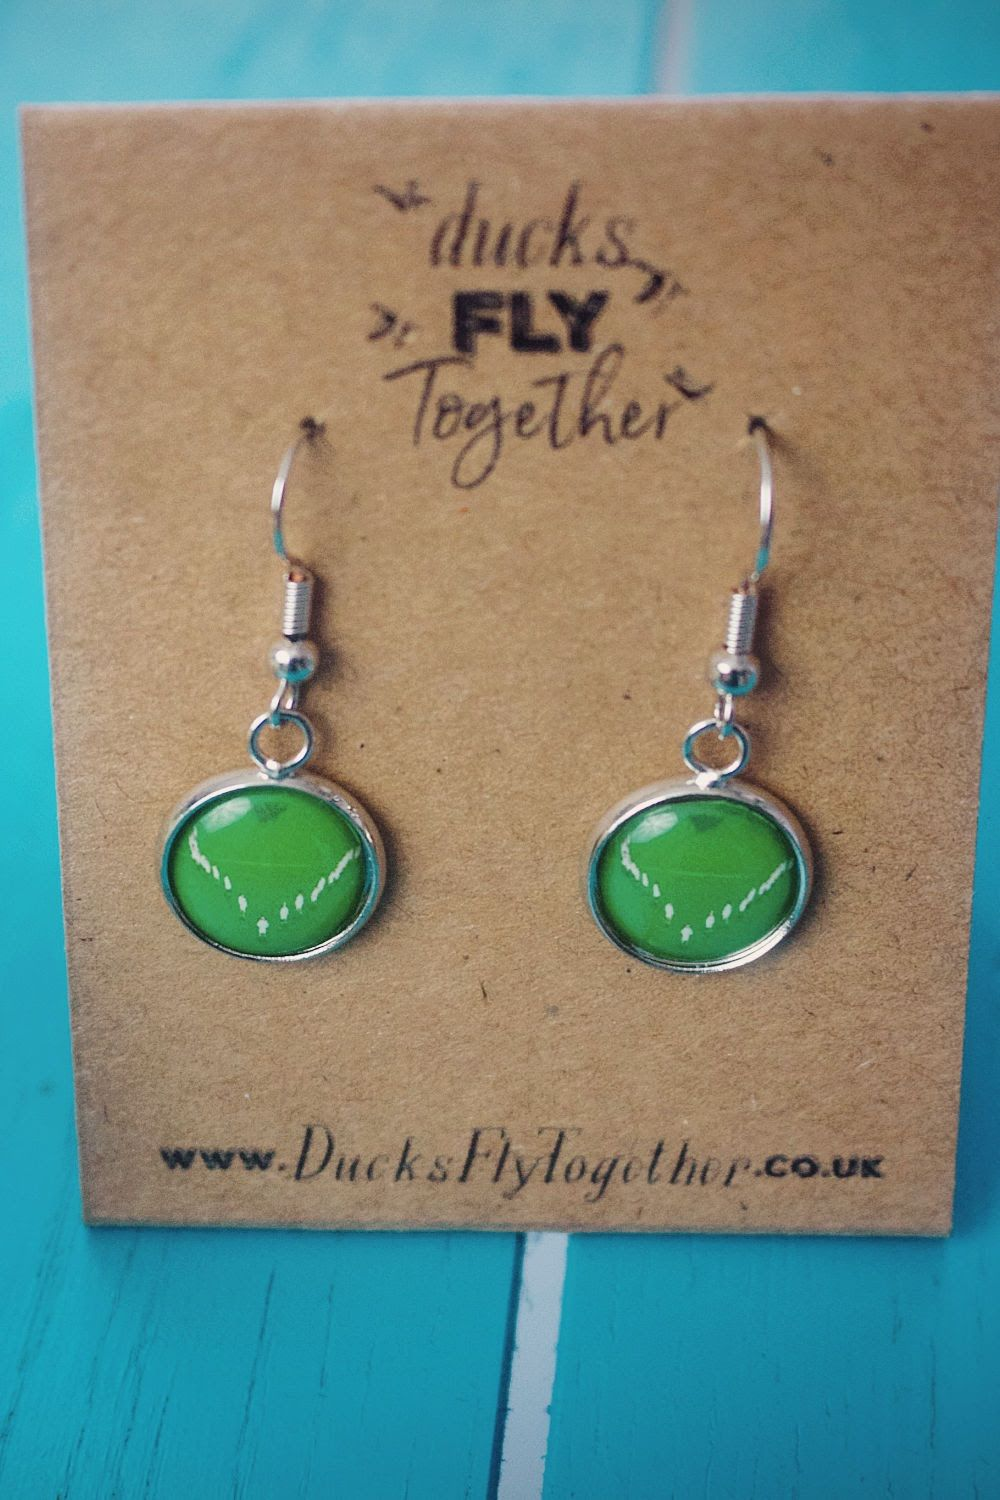 England Rugby Earrings Rugby World Cup Haka Challenge Flying V Gift For Her Unique Personalized Gift Theatre Gifts Musical Theater Gifts